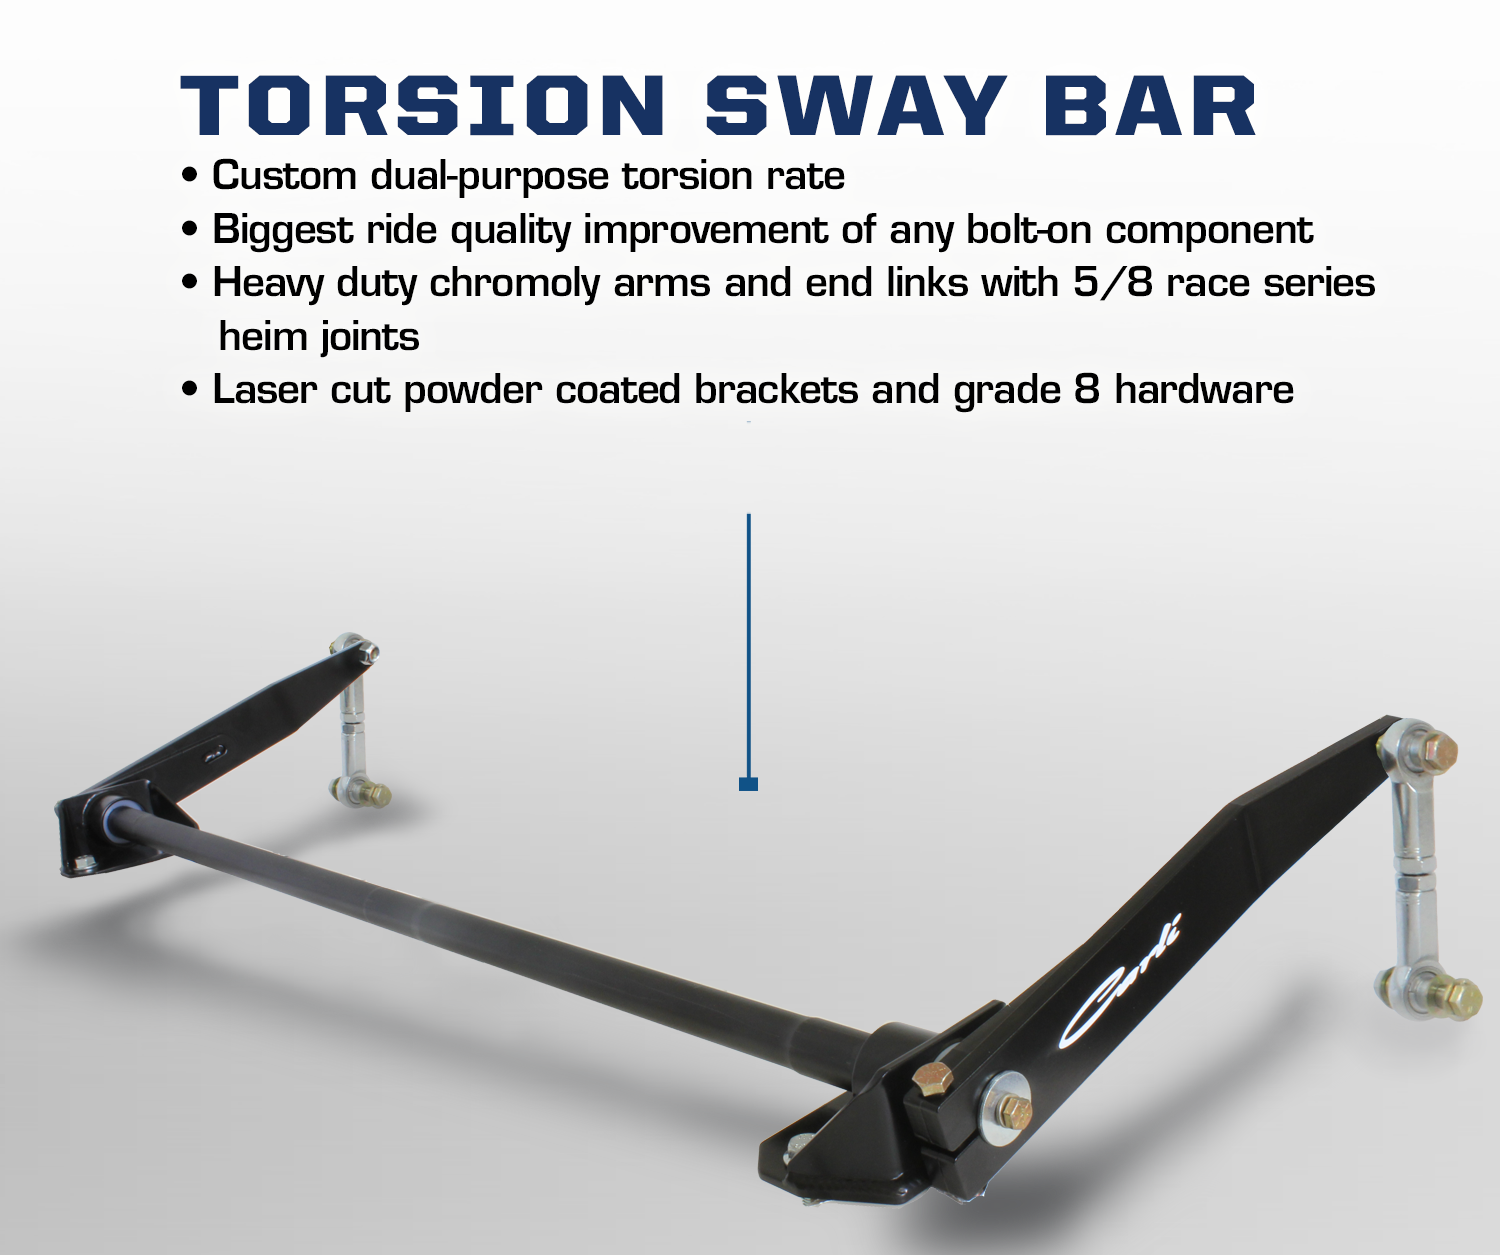 Carli Dodge Ram 3500 Torsion Sway Bar